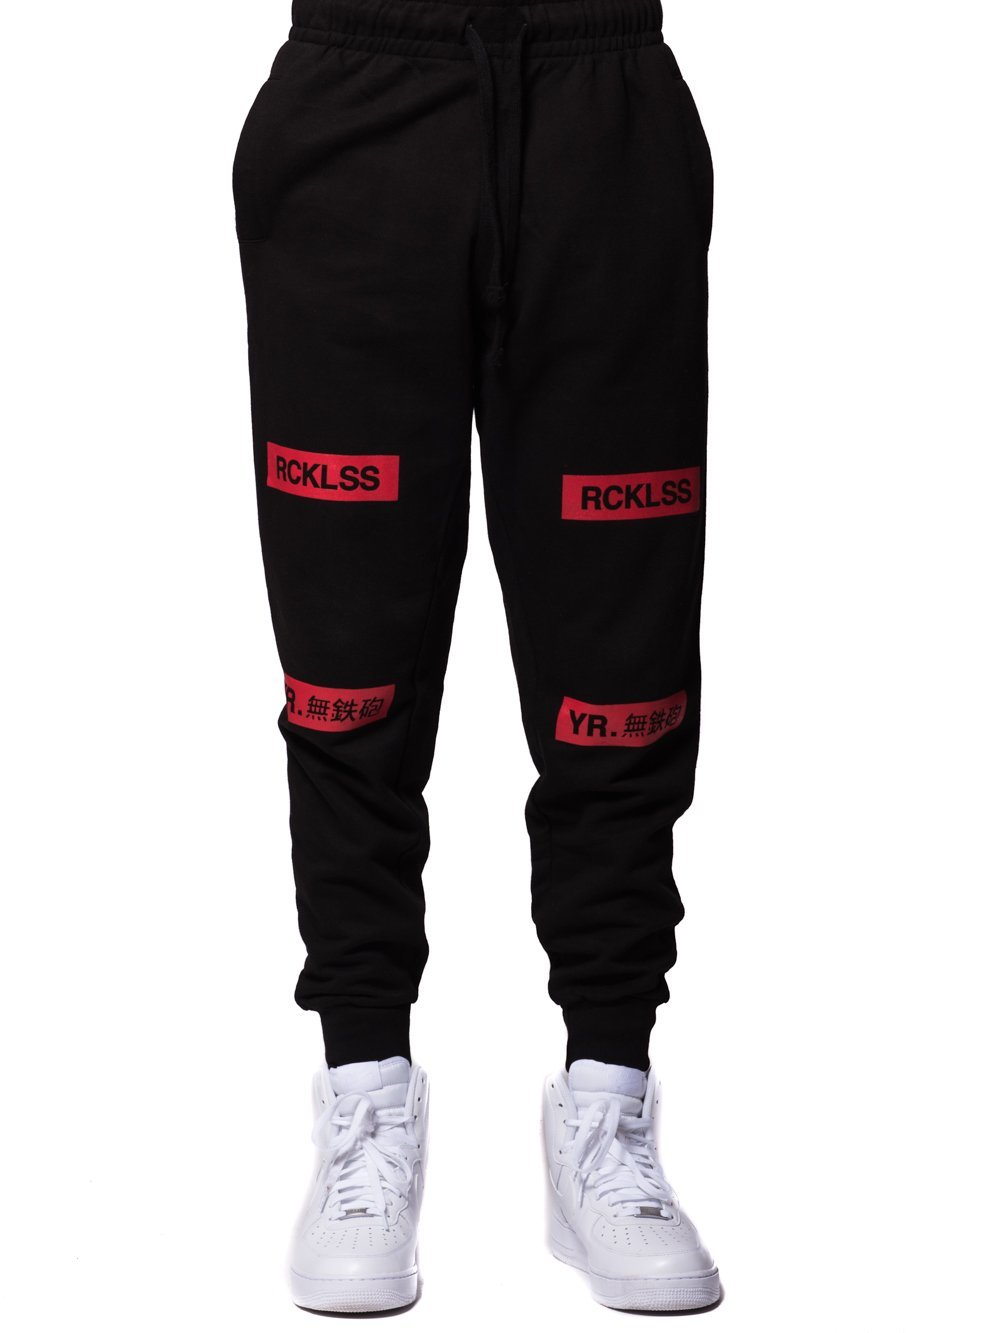 Young and Reckless Mens - Bottoms - Sweatpants Dual Threat Sweatpants - Black/Red